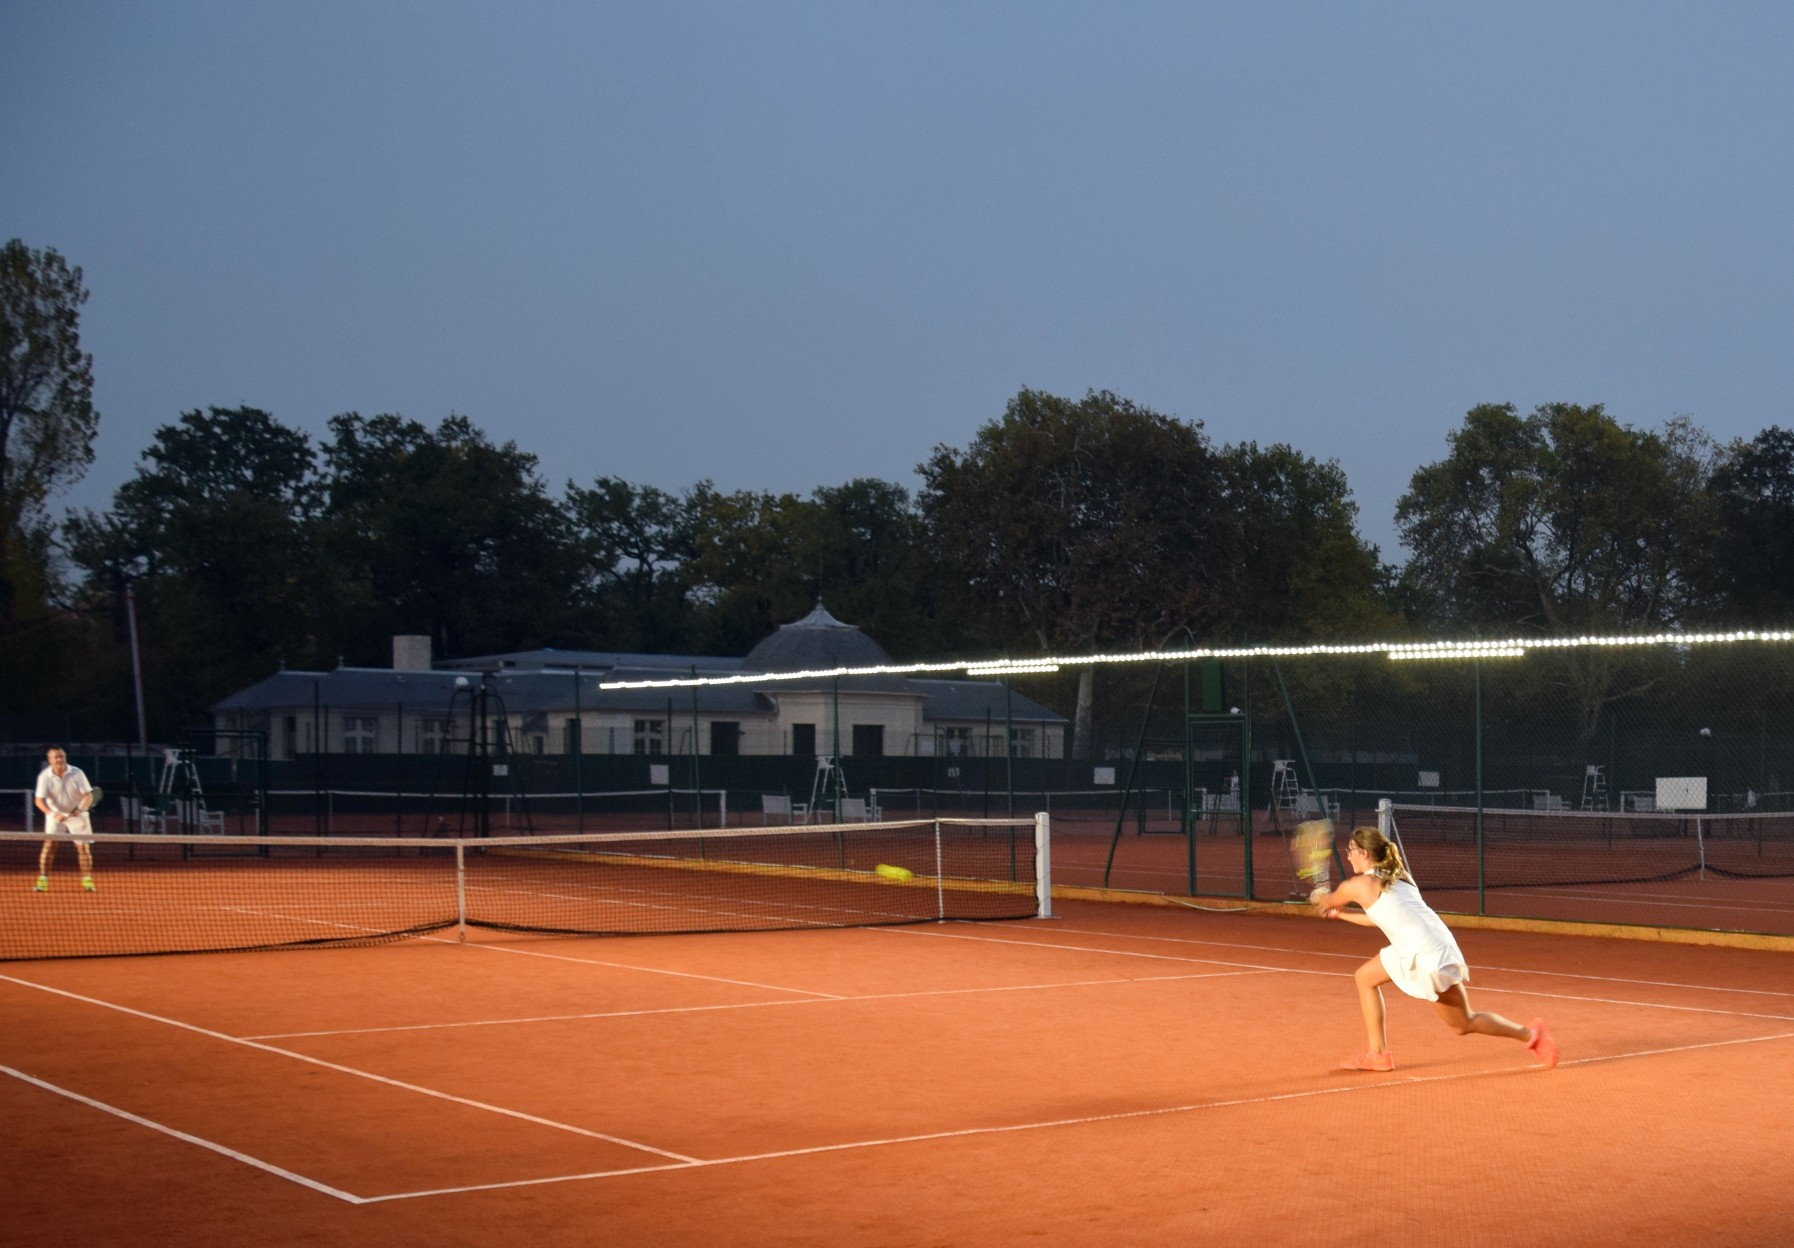 Illuminate your tennis court with lights from Tweener® at half the cost of traditional floodlights.